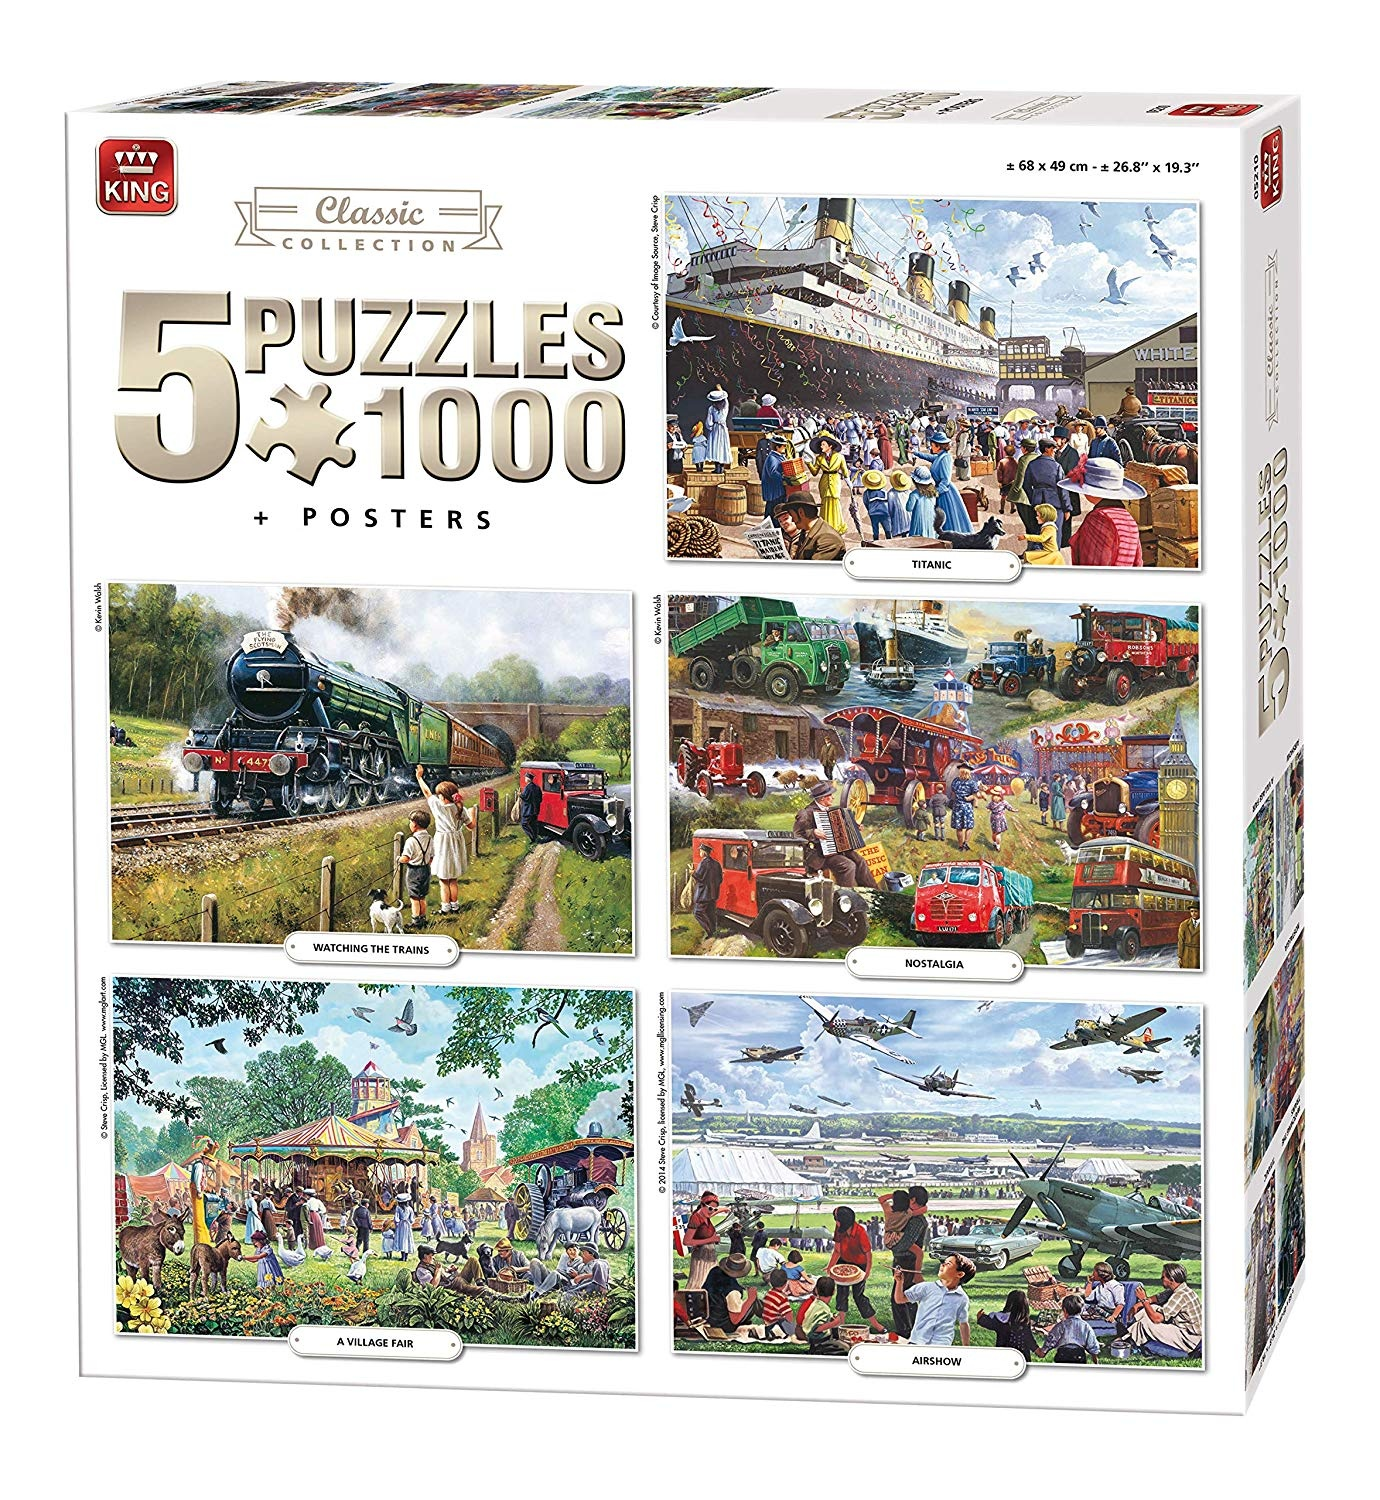 King jigsaw puzzle Classic Collection 5 puzzles 1000 pieces